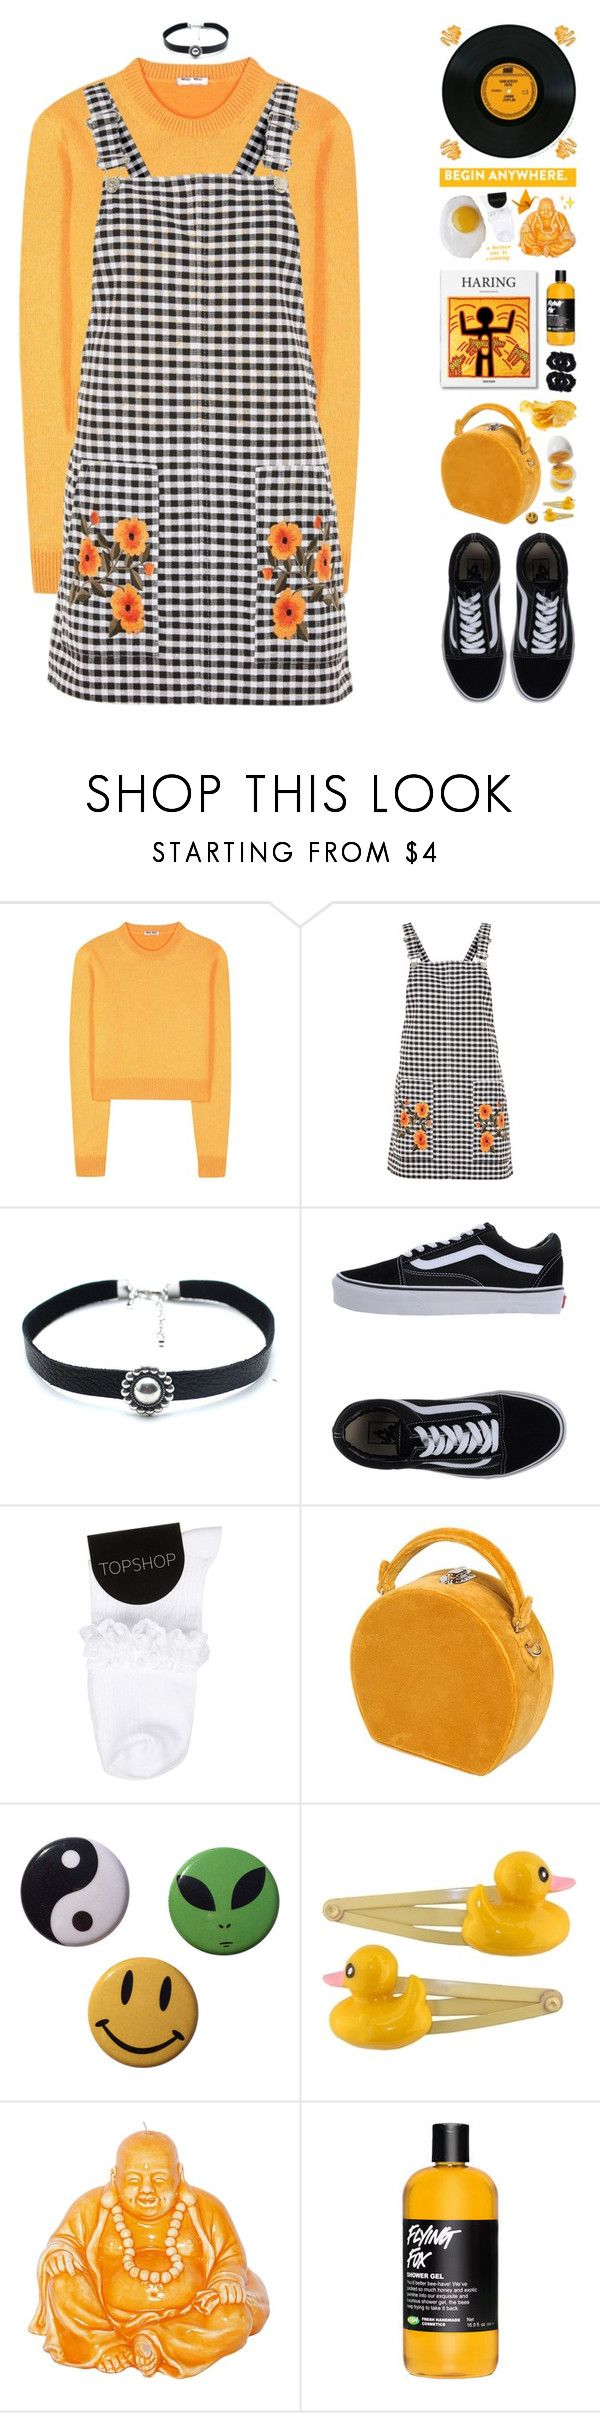 """[ BLOOMING ]"" by pastelmalfoy ❤ liked on Polyvore featuring Miu Miu, Topshop, Child Of Wild, Vans, Bertoni, Clips, Mario Luca Giusti and Accessorize"